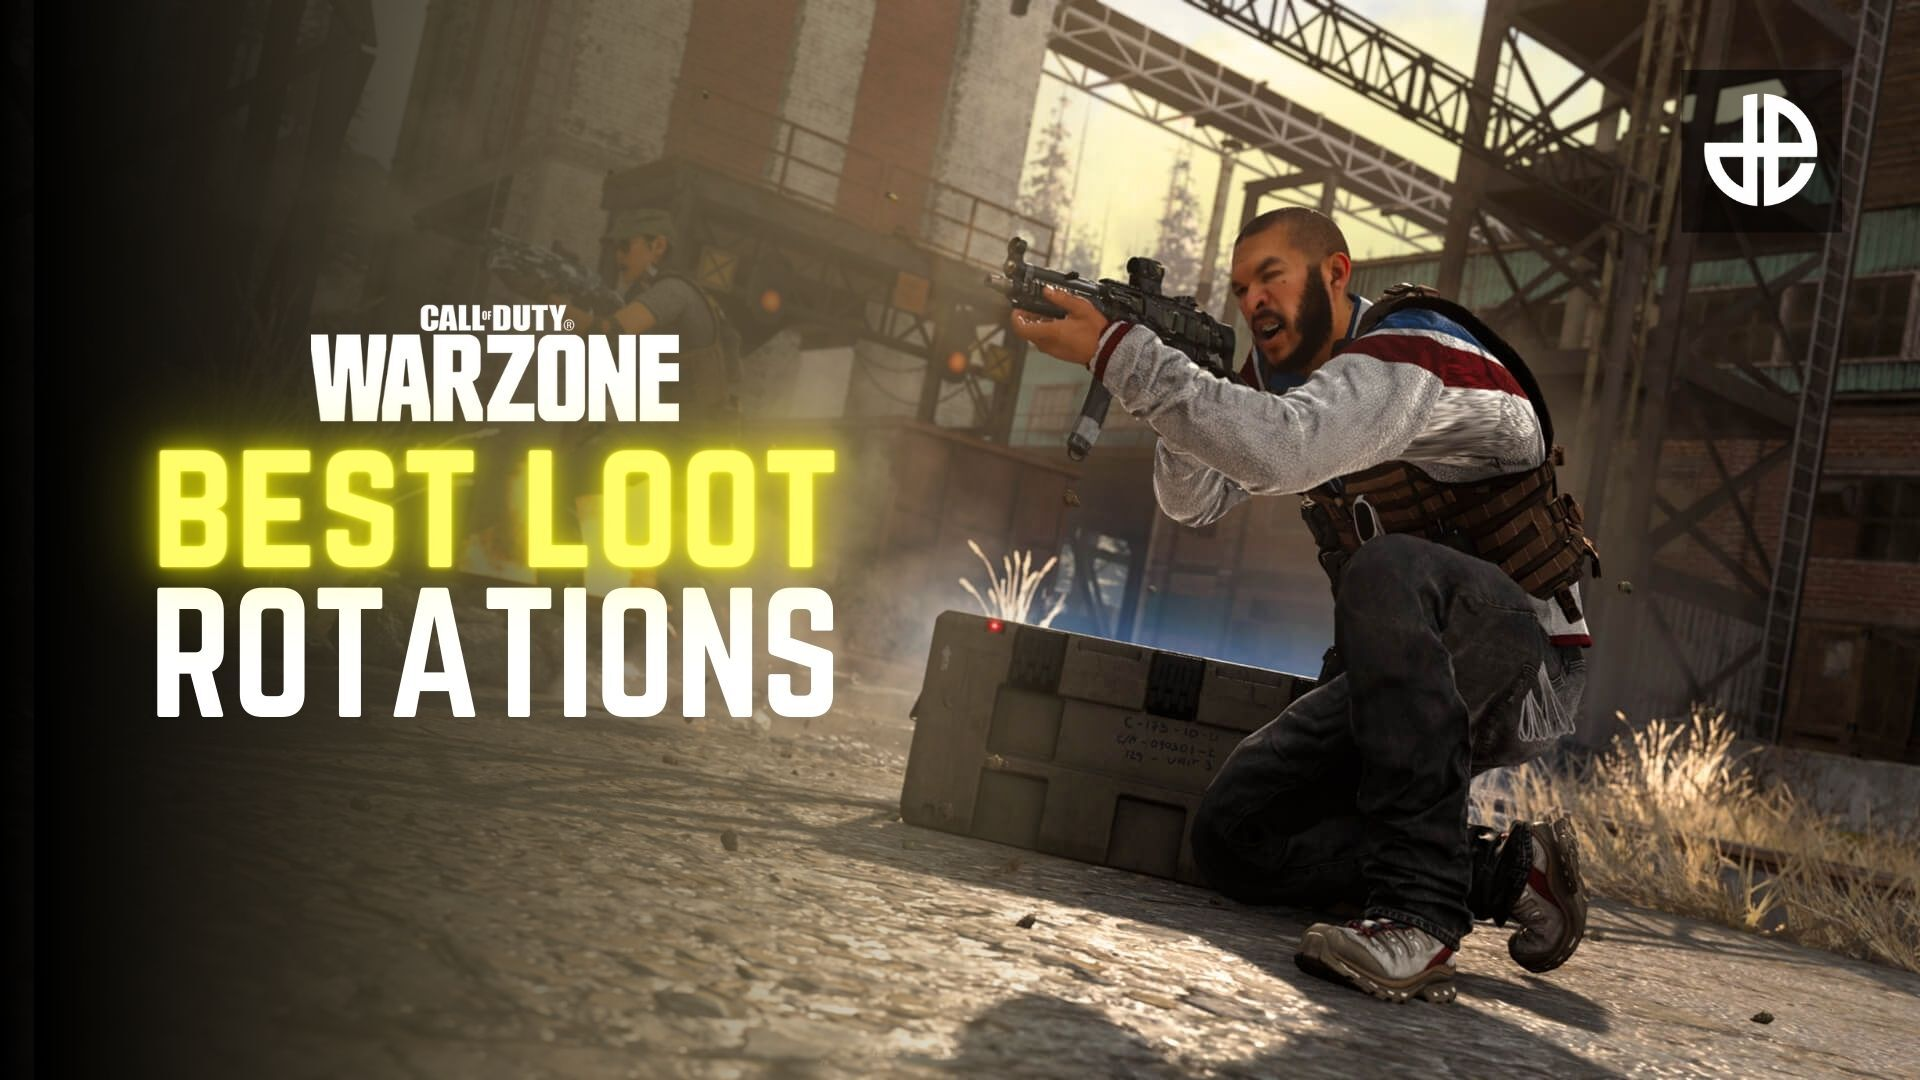 warzone best loot rotations